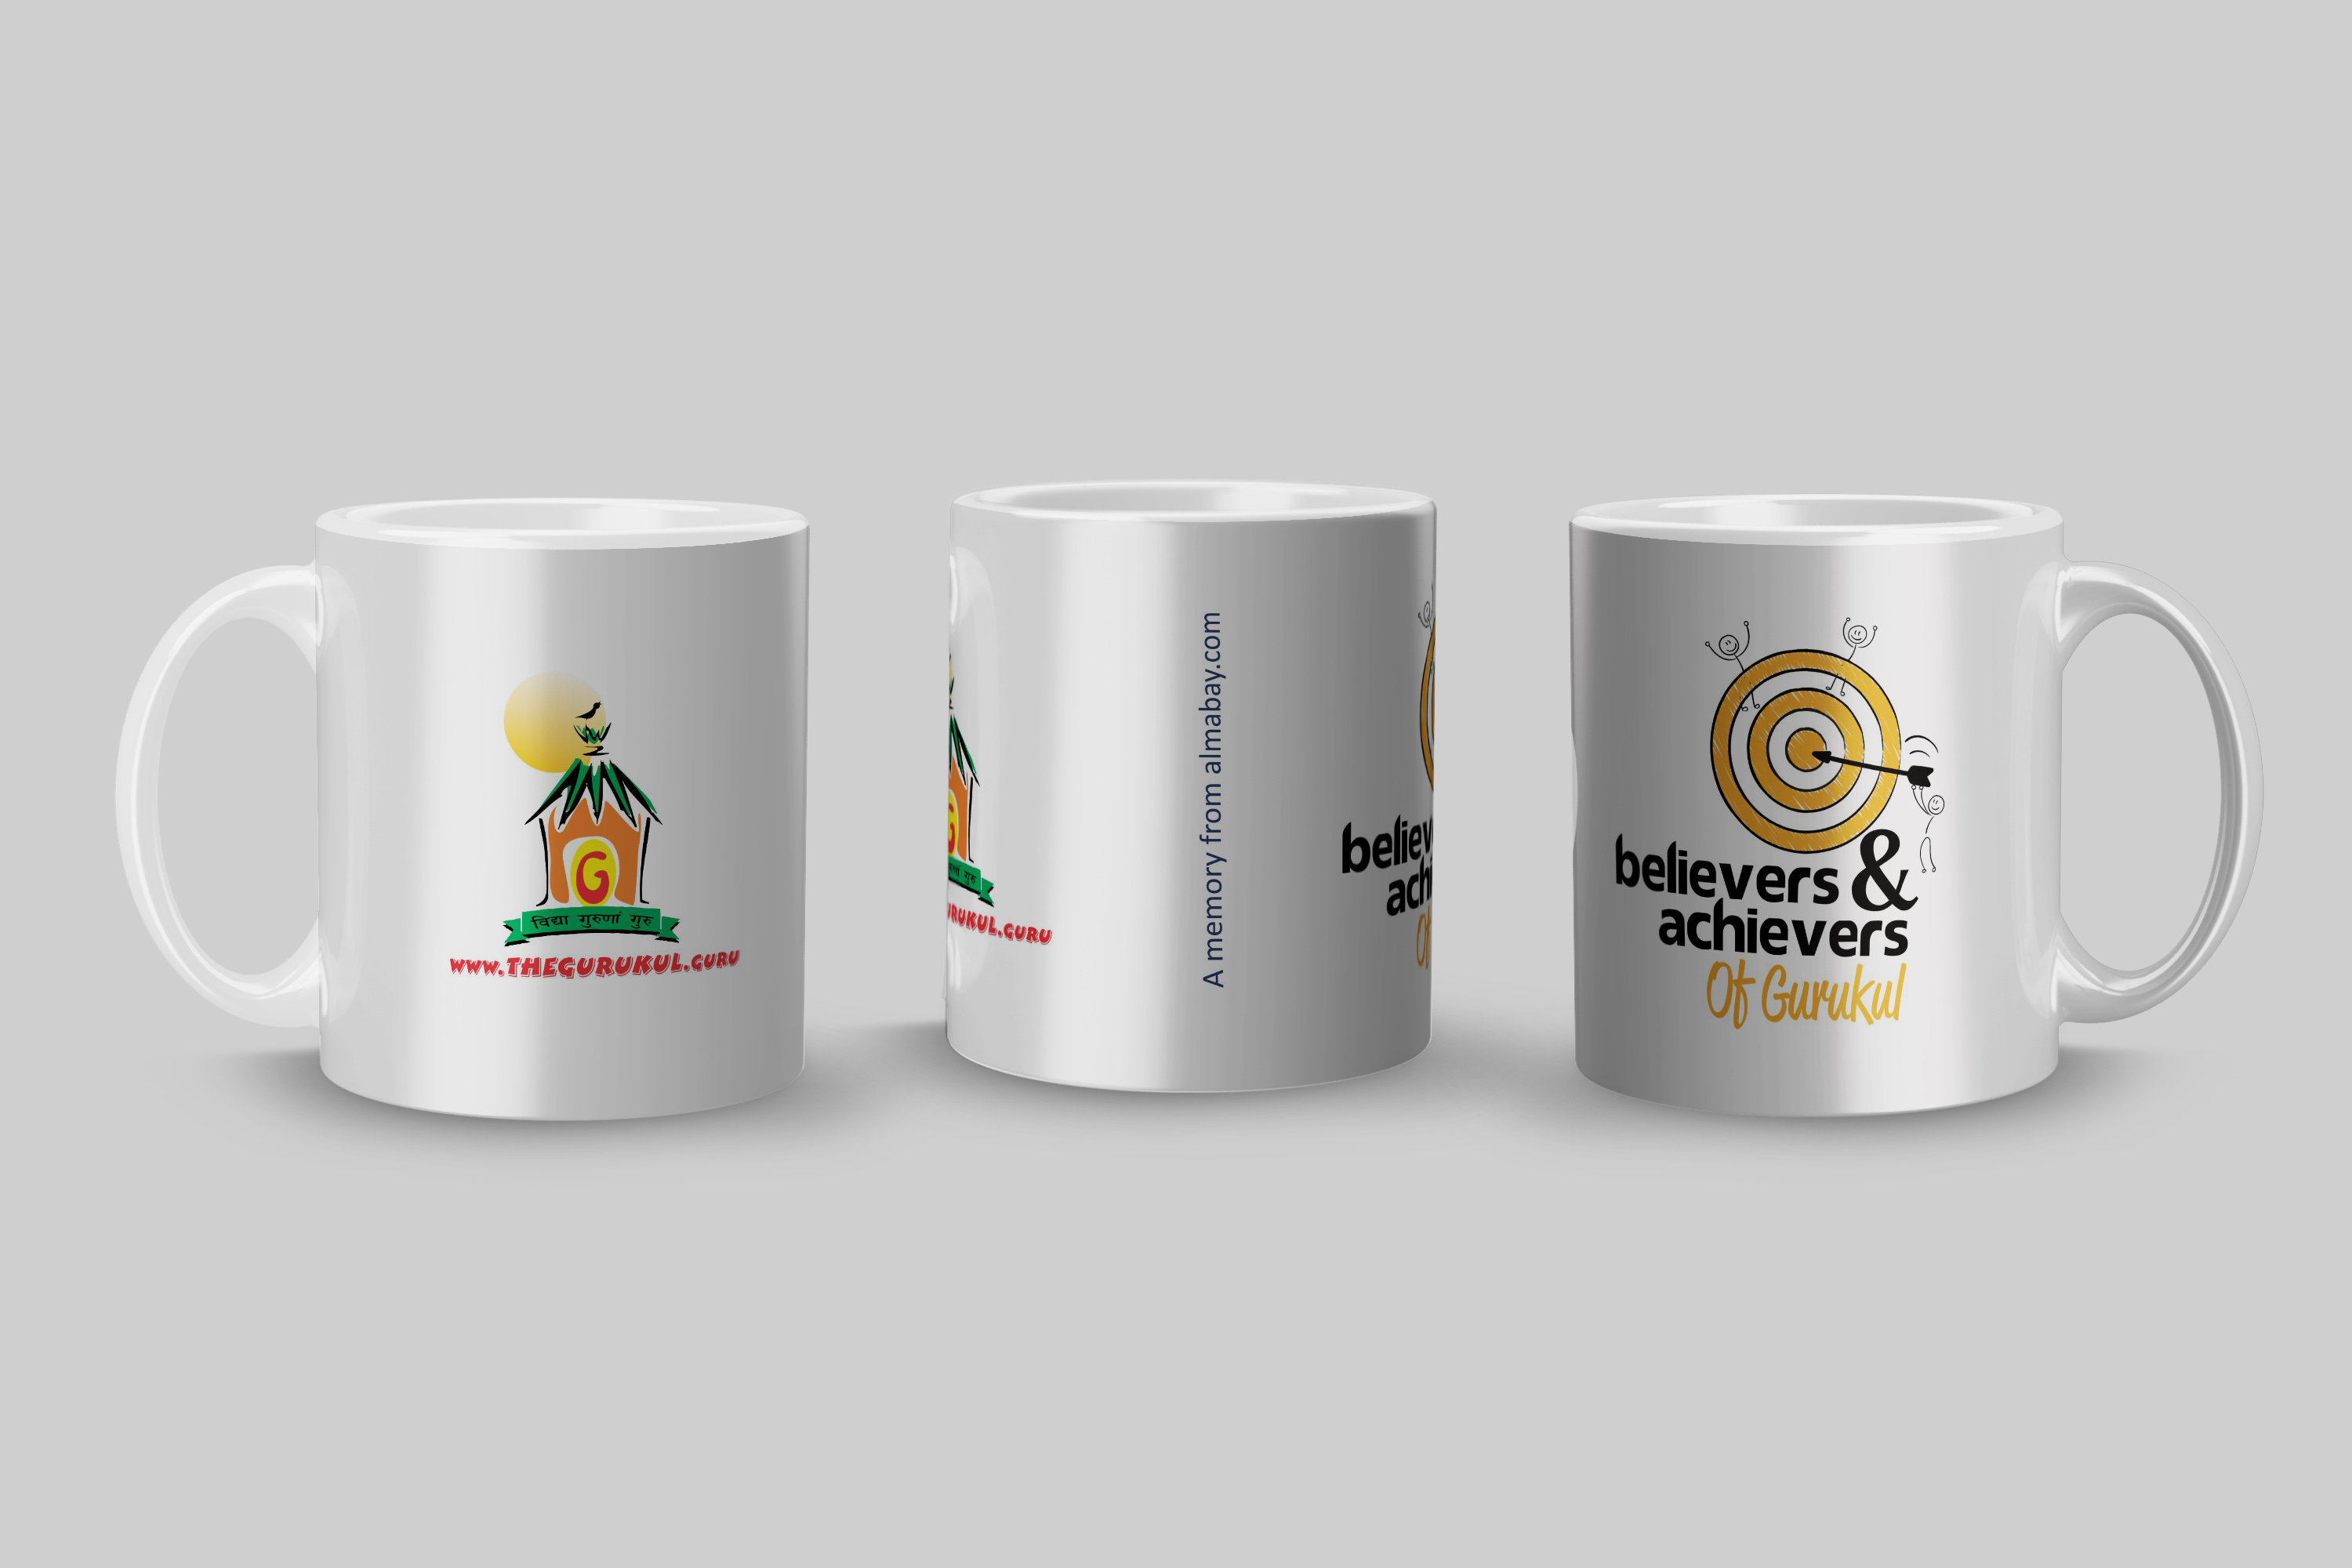 Believers & Achievers Of Gurukul Mug